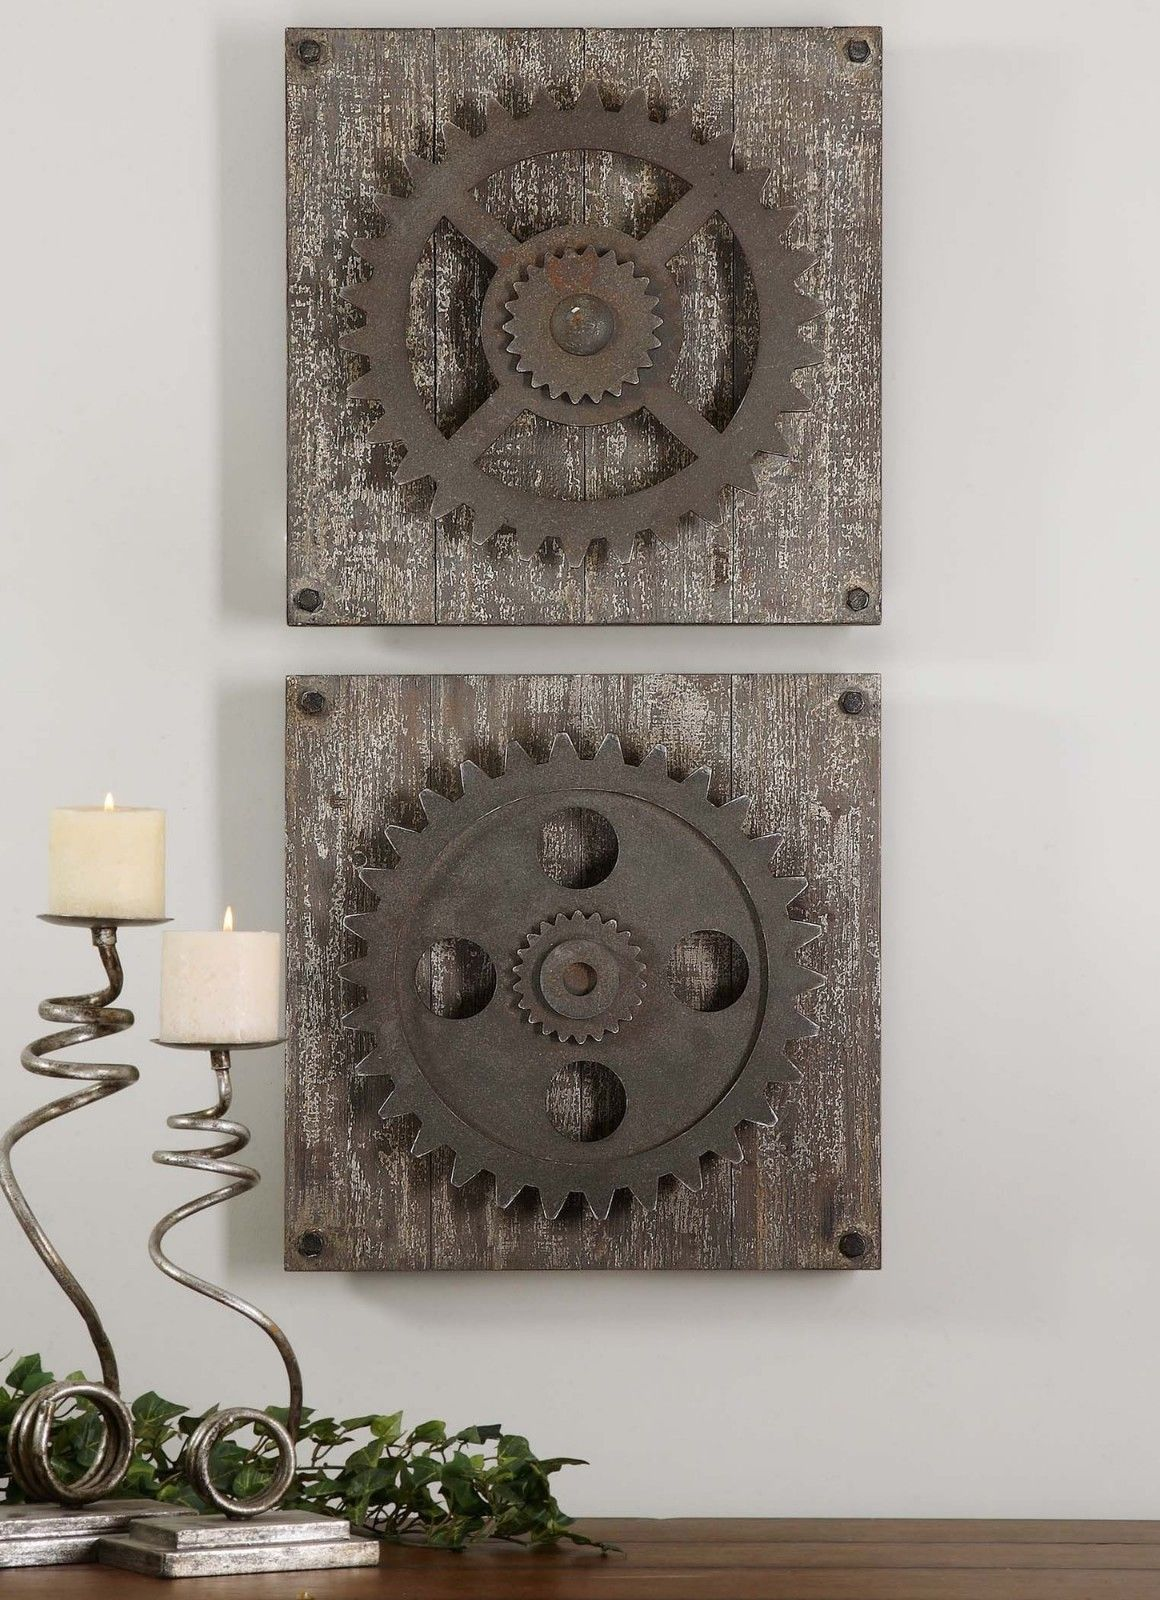 Industrial Wall Decor Urban Industrial Loft Steampunk Decor Rusty Gears Cogs 3d Wall Art